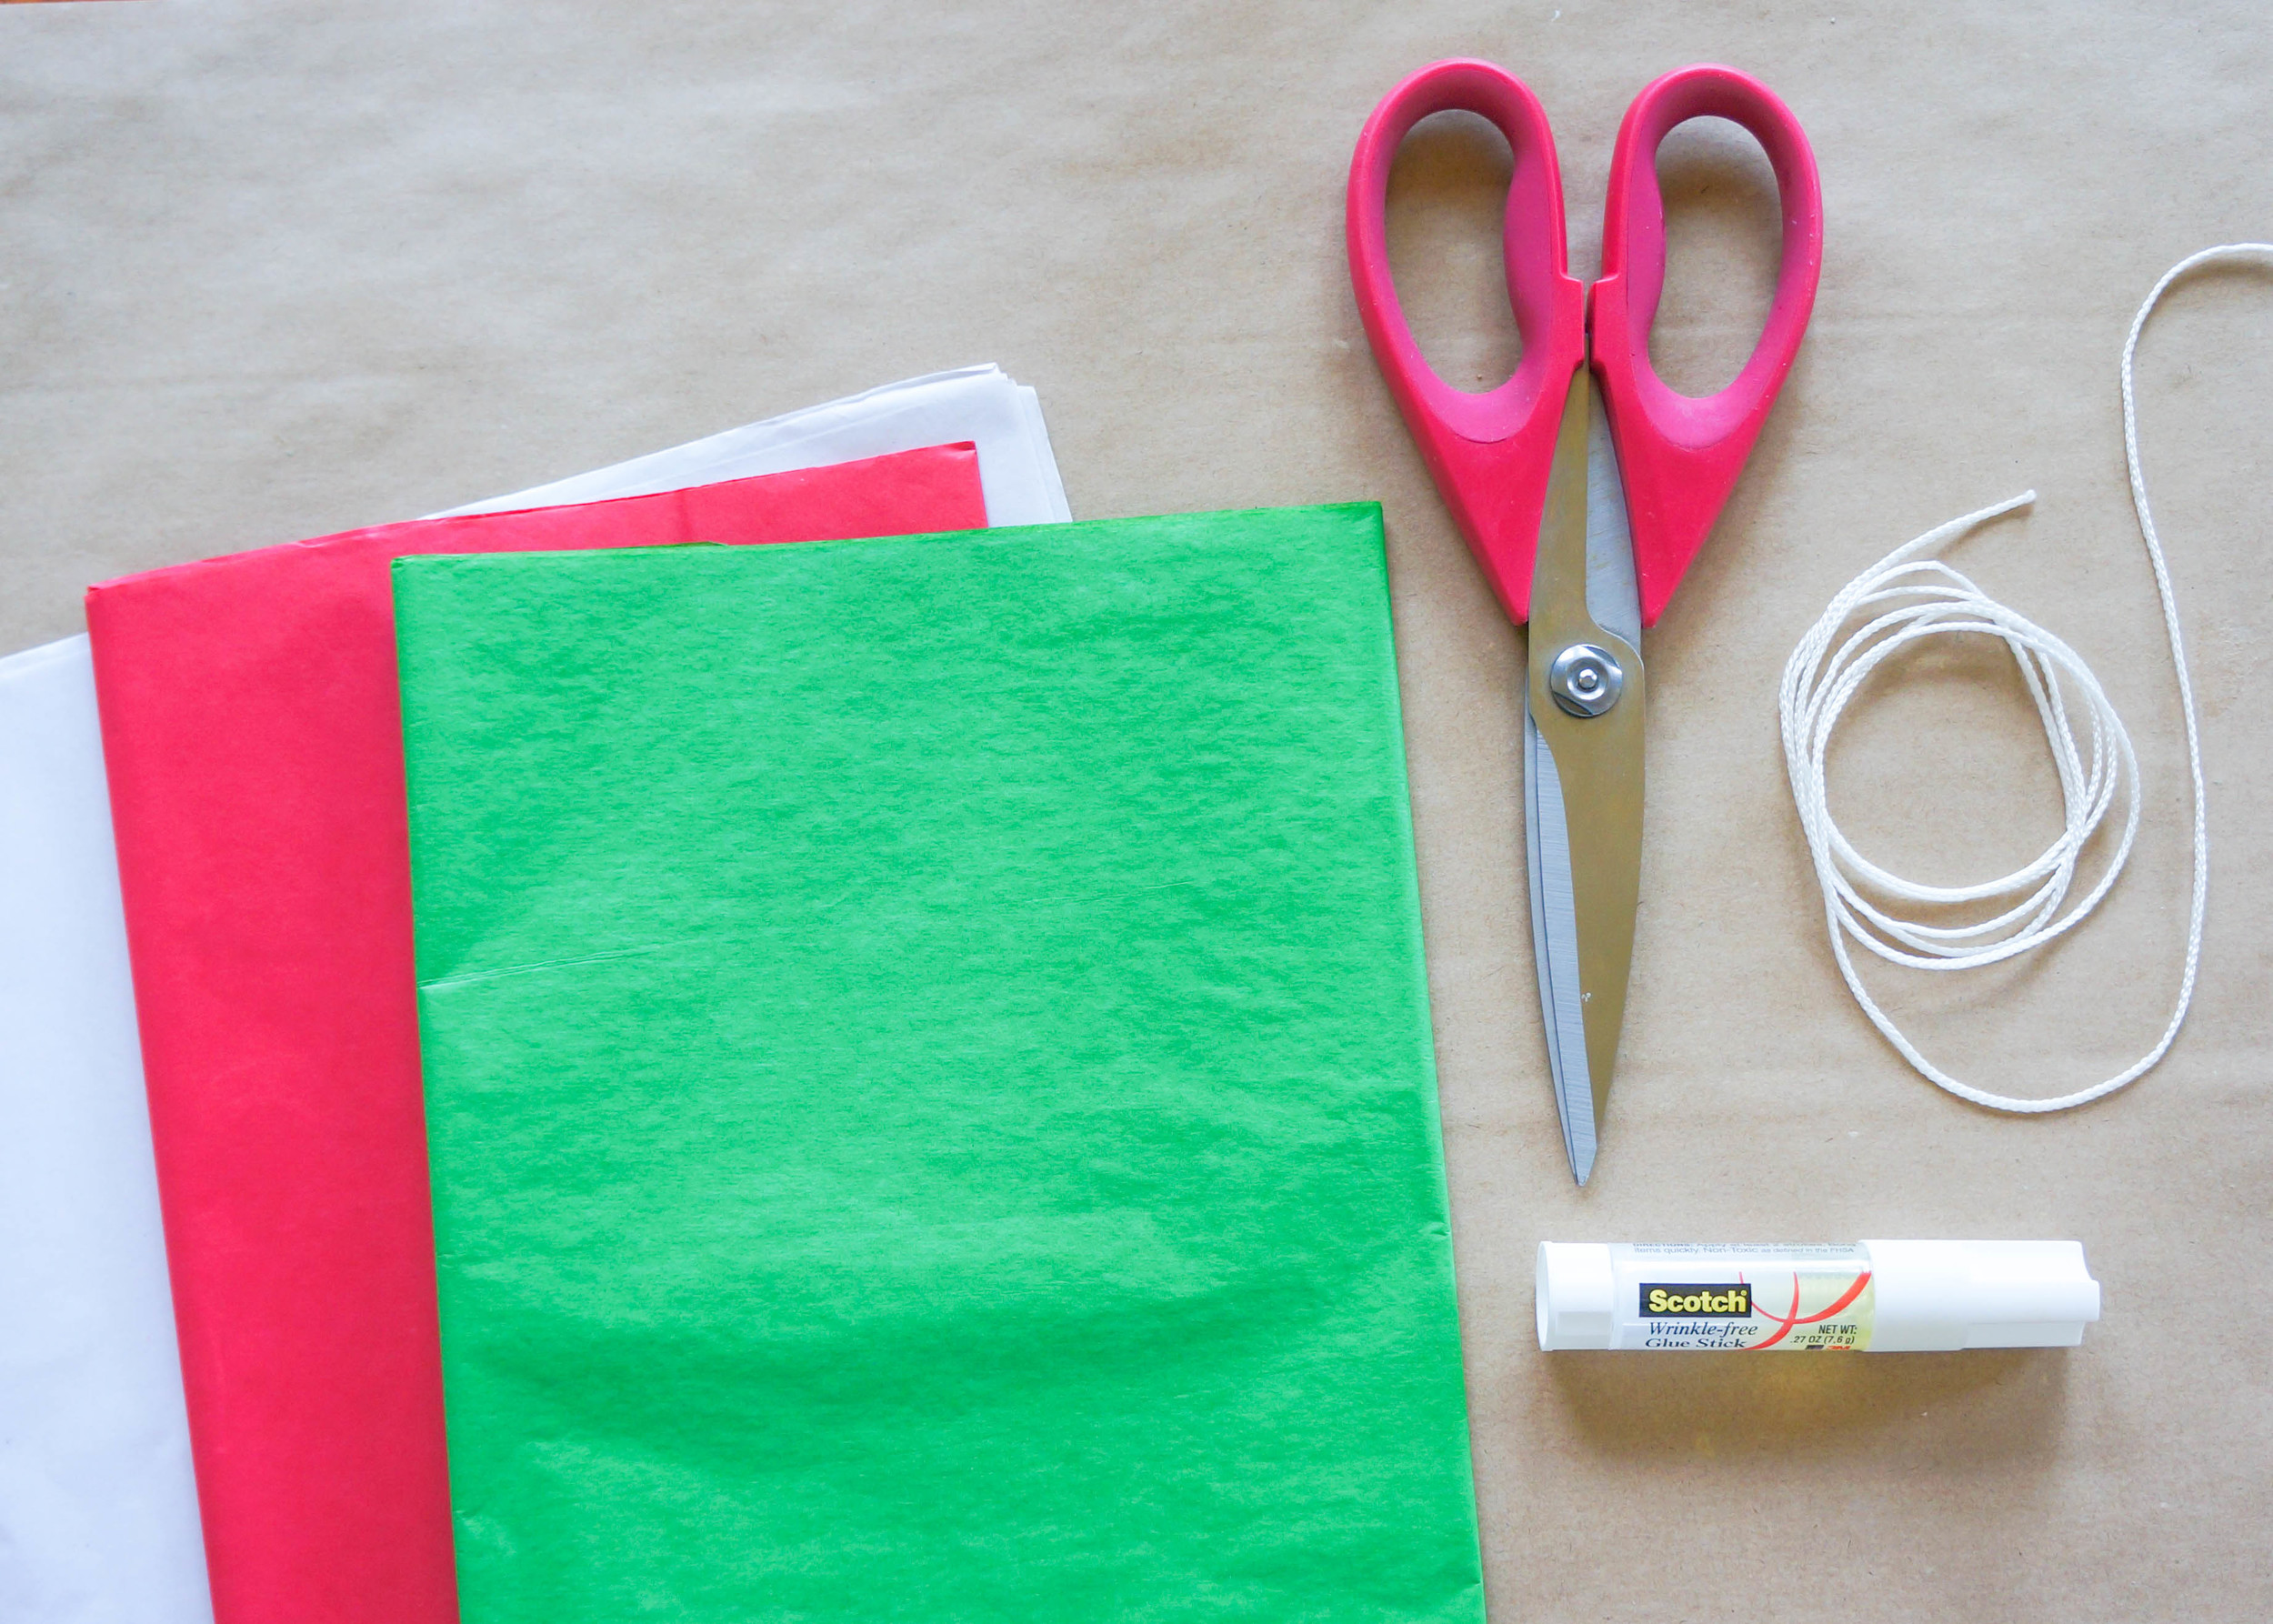 -Tissue paper, of any color. In fact, the more colors you have the better your Papel Picado (Perforated Paper) will look!  -String. Any string will work but I would suggest something thicker than sewing string.  -Scissors  -Glue stick